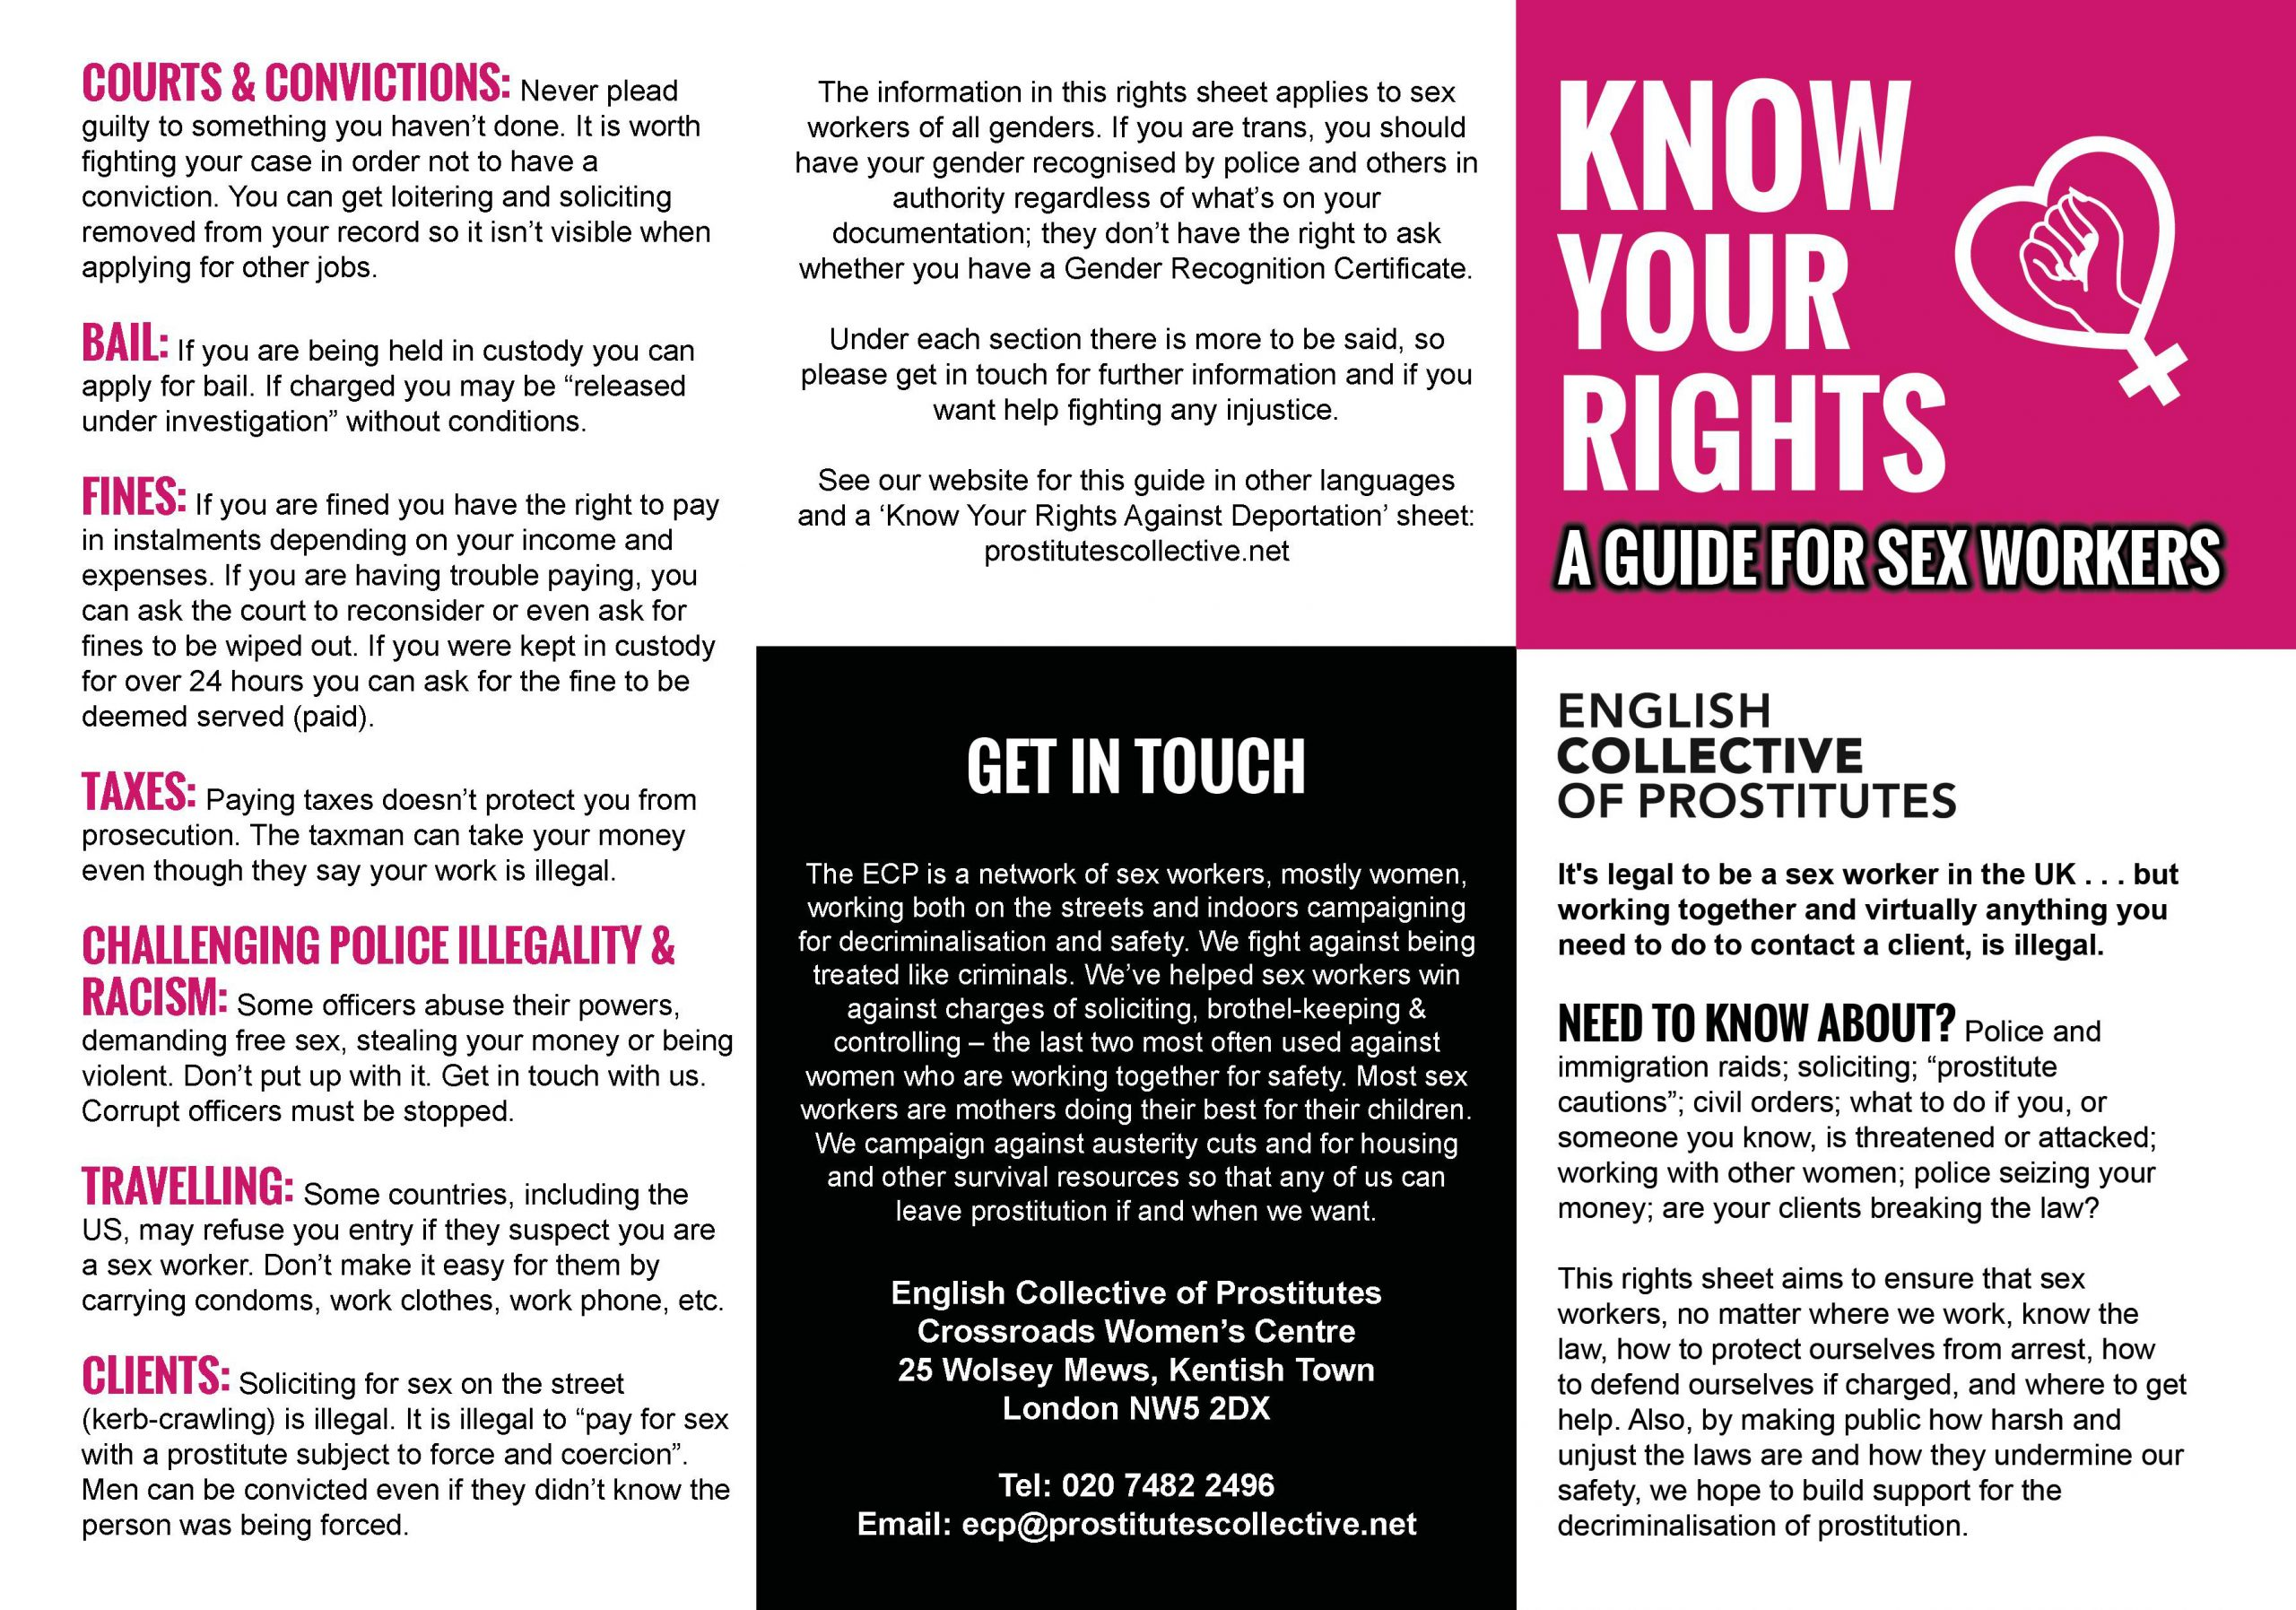 Resources - rights sheet